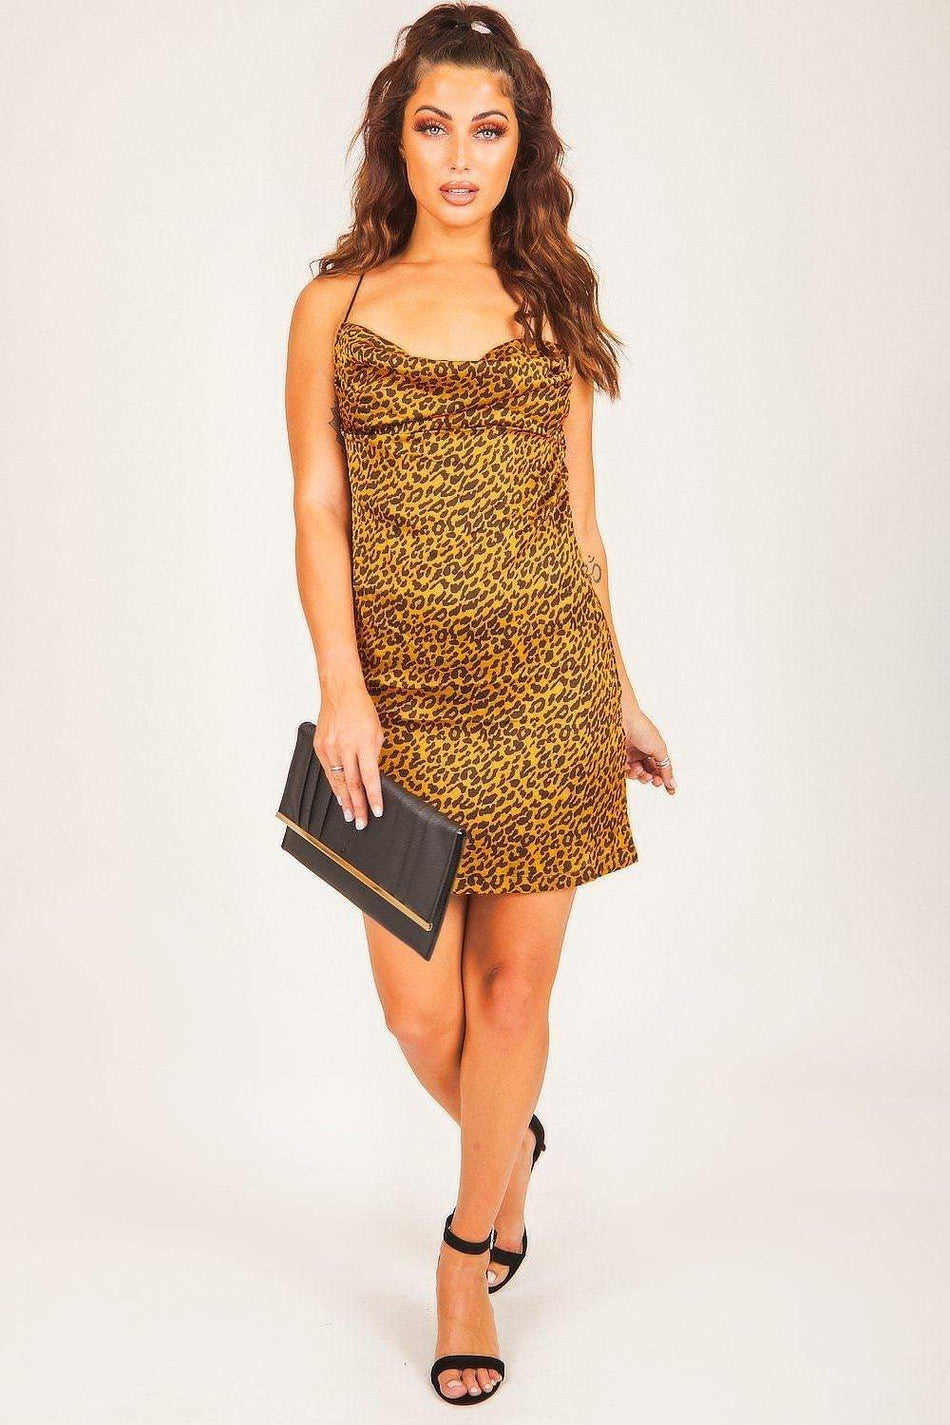 Mustard & Black Leopard Print Mini Dress - KATCH ME